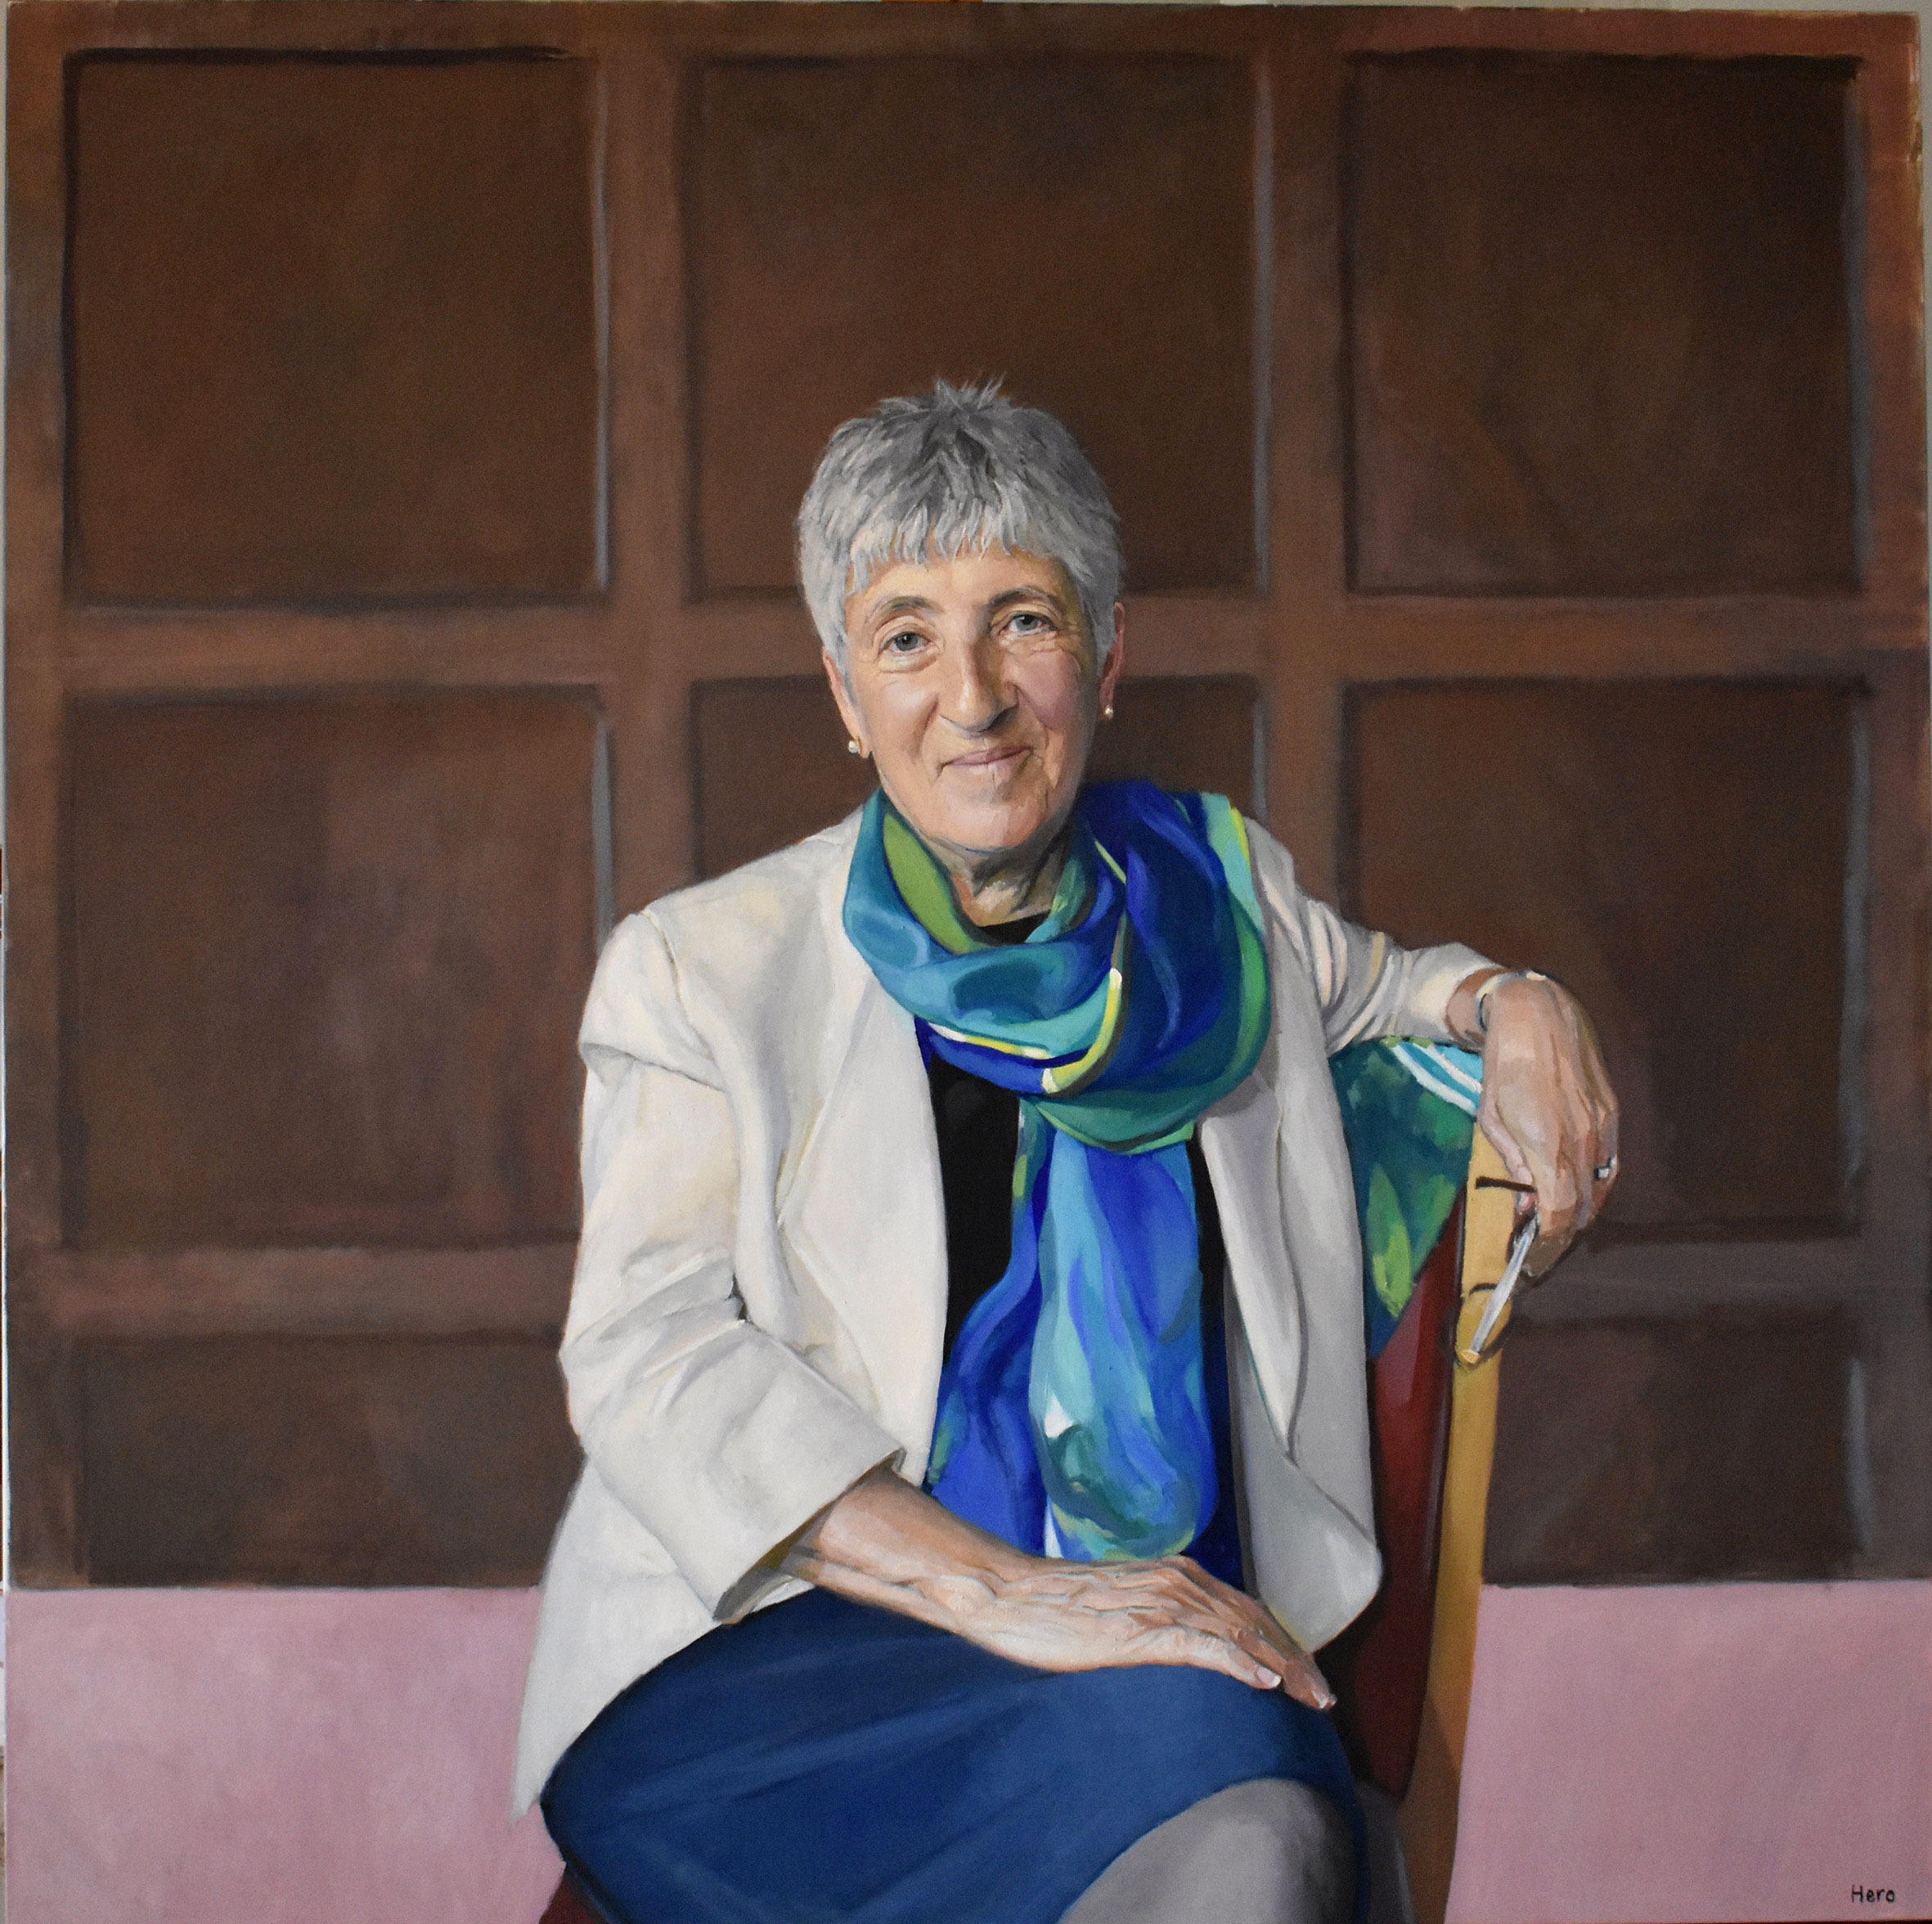 Dame Lynne Brindley's portrait by Hero Johnson